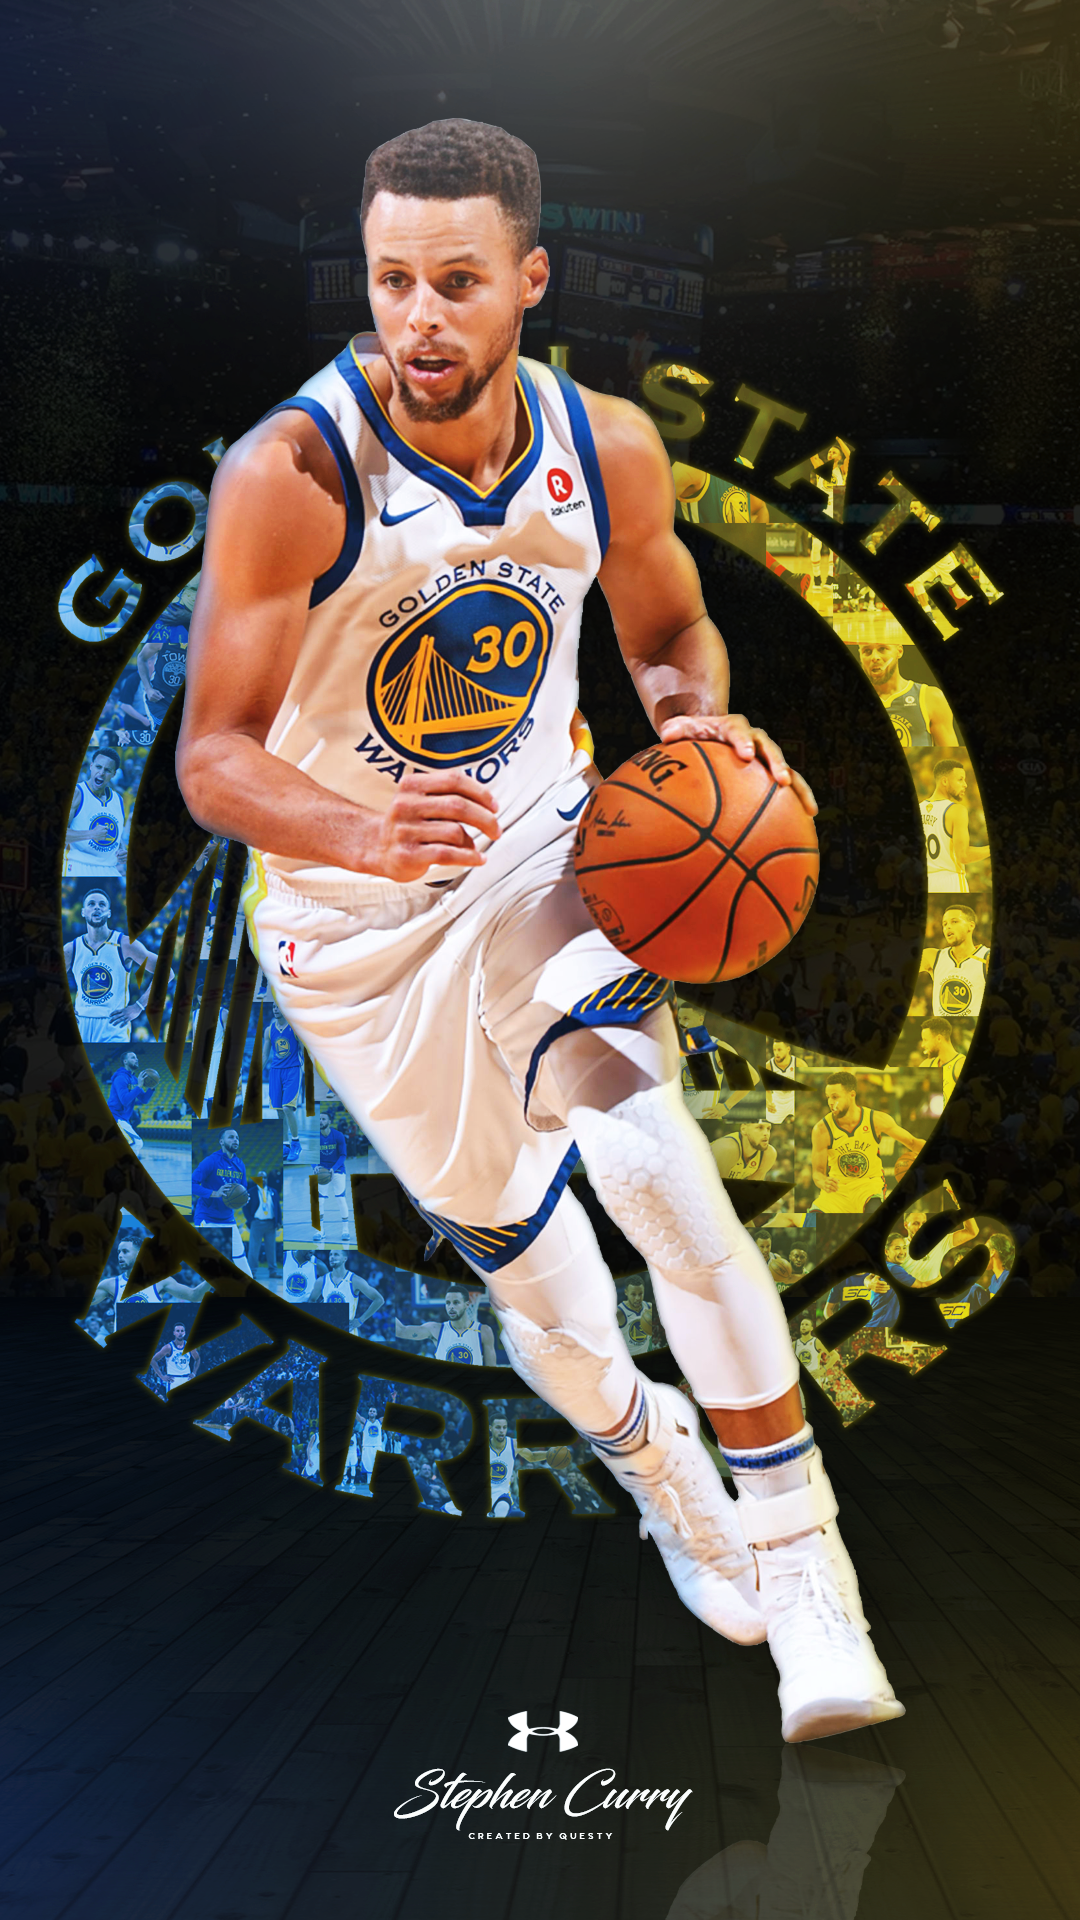 Stephen Curry Phone Wallpapers - Top Free Stephen Curry ...